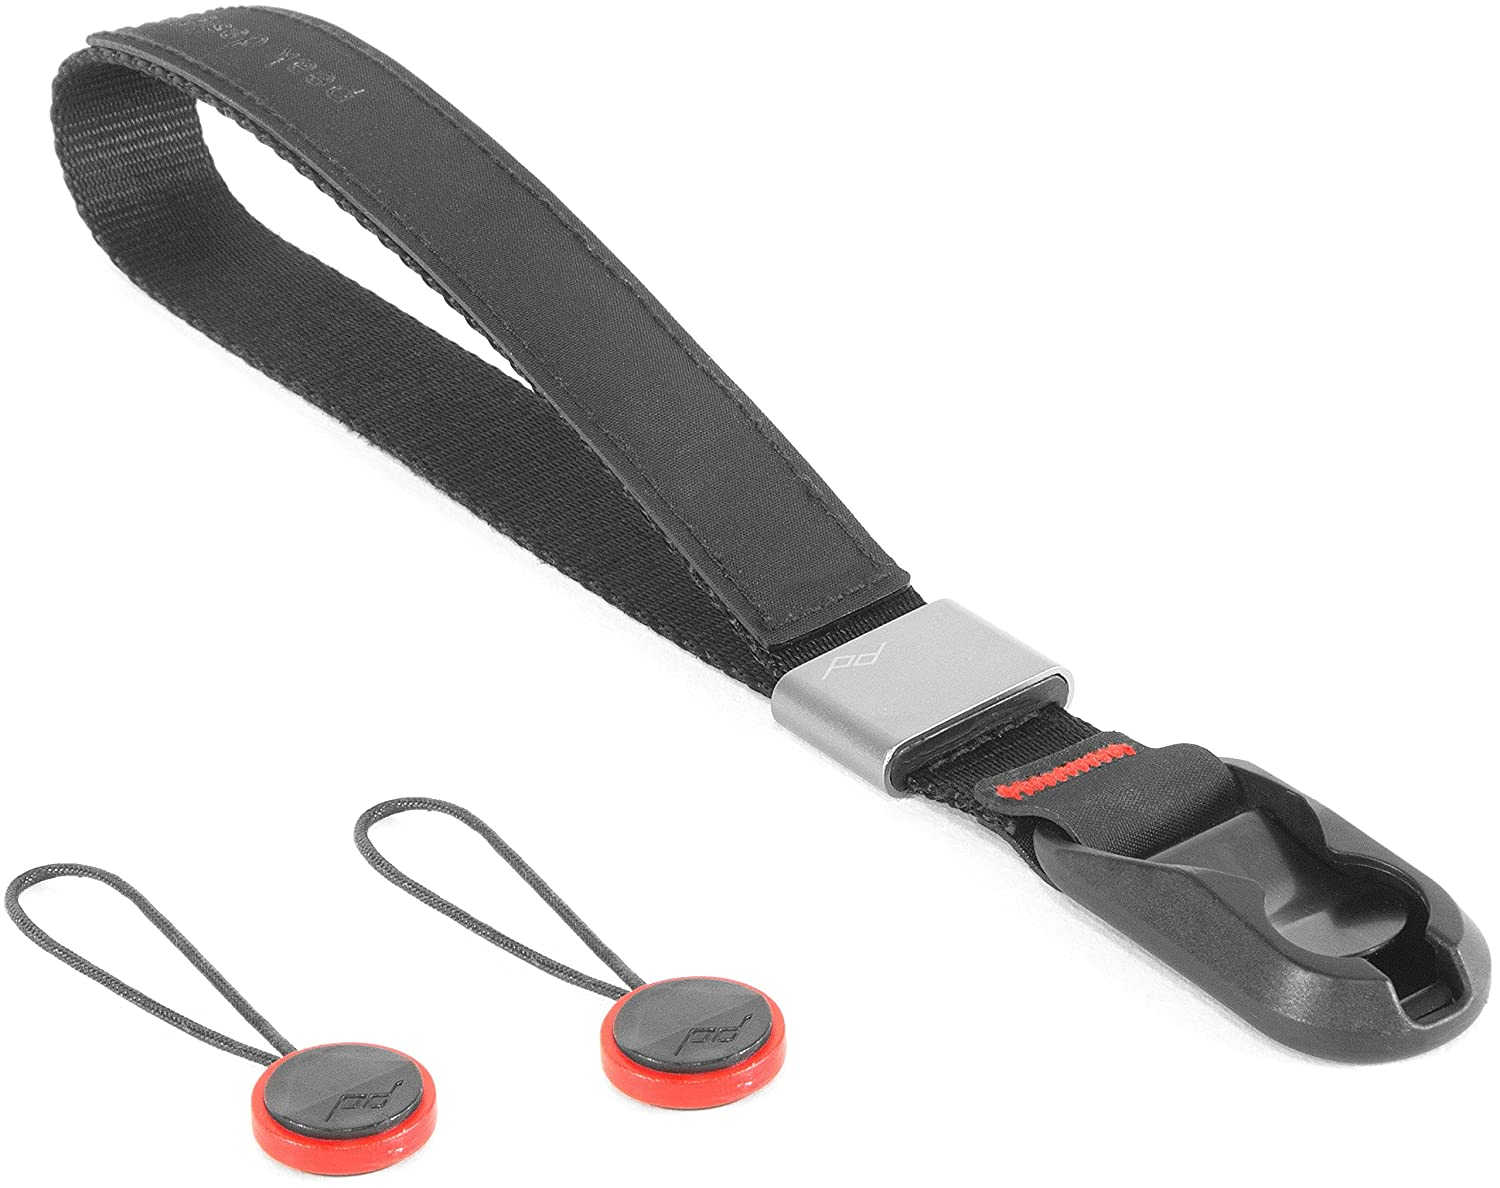 Peak Design Cuff Camera Wrist Strap (Black)